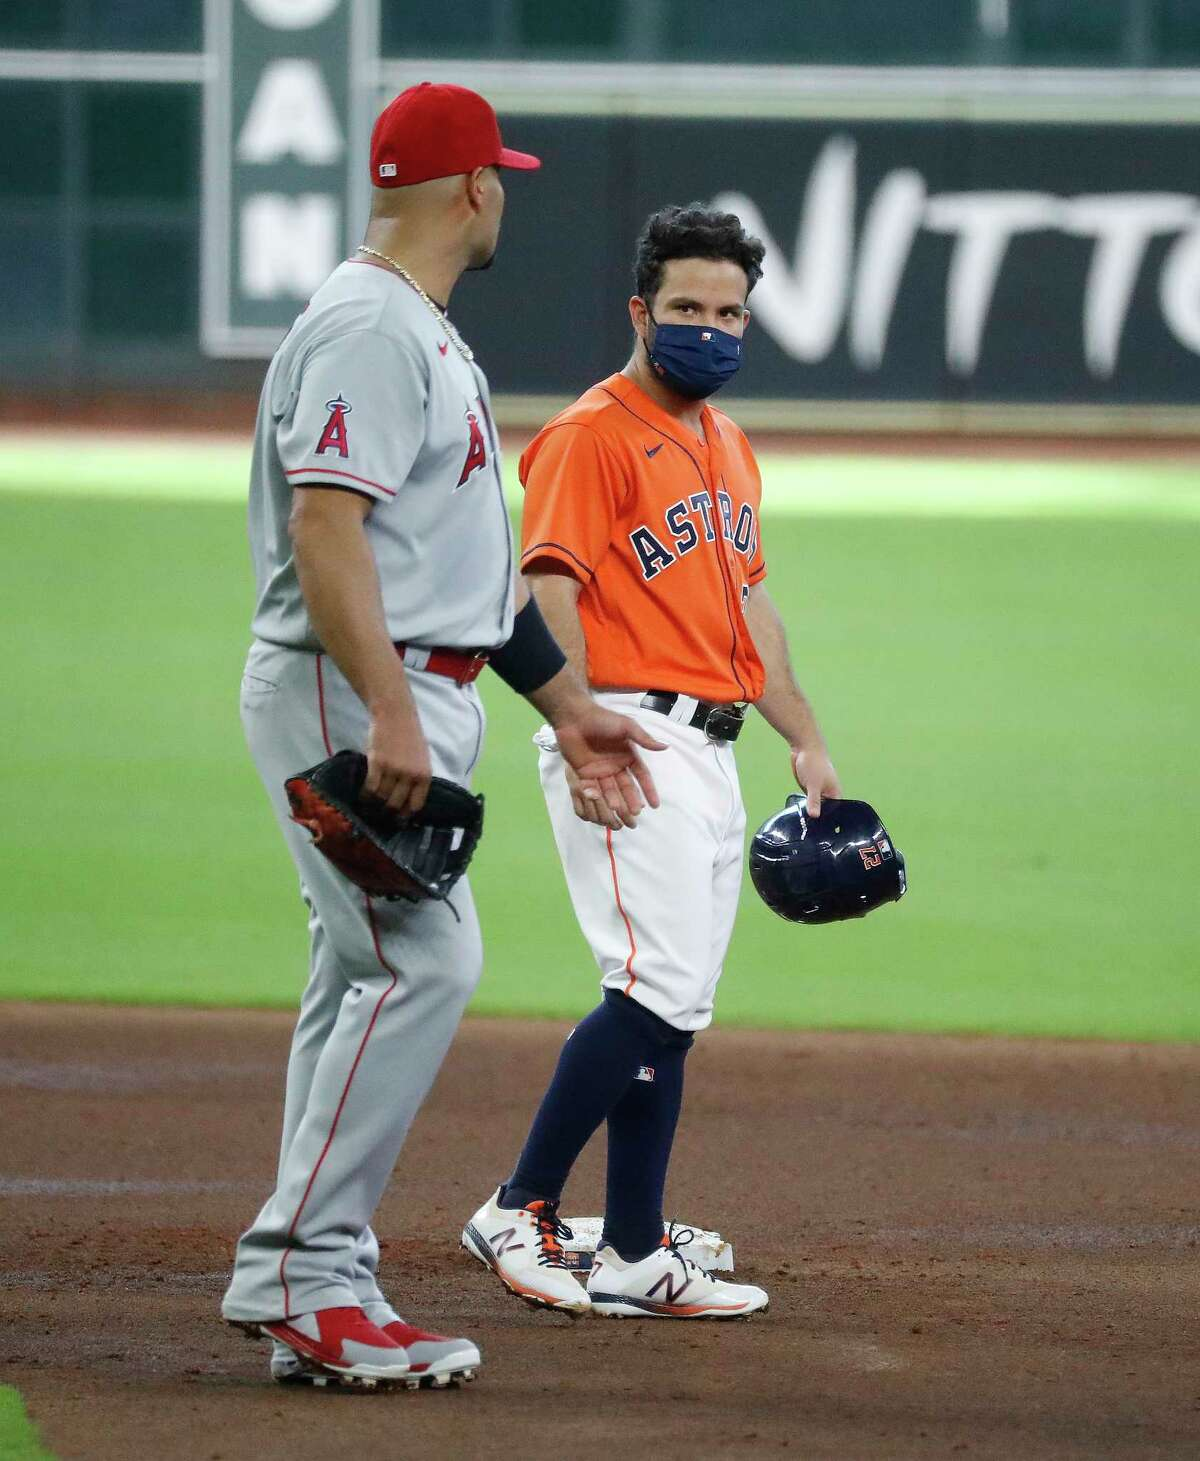 Houston Astros Jose Altuve (27) and Los Angeles Angels first baseman Albert Pujols (5) chat during a pitching change during the second inning of an MLB baseball game at Minute Maid Park, Tuesday, August 25, 2020, in Houston.